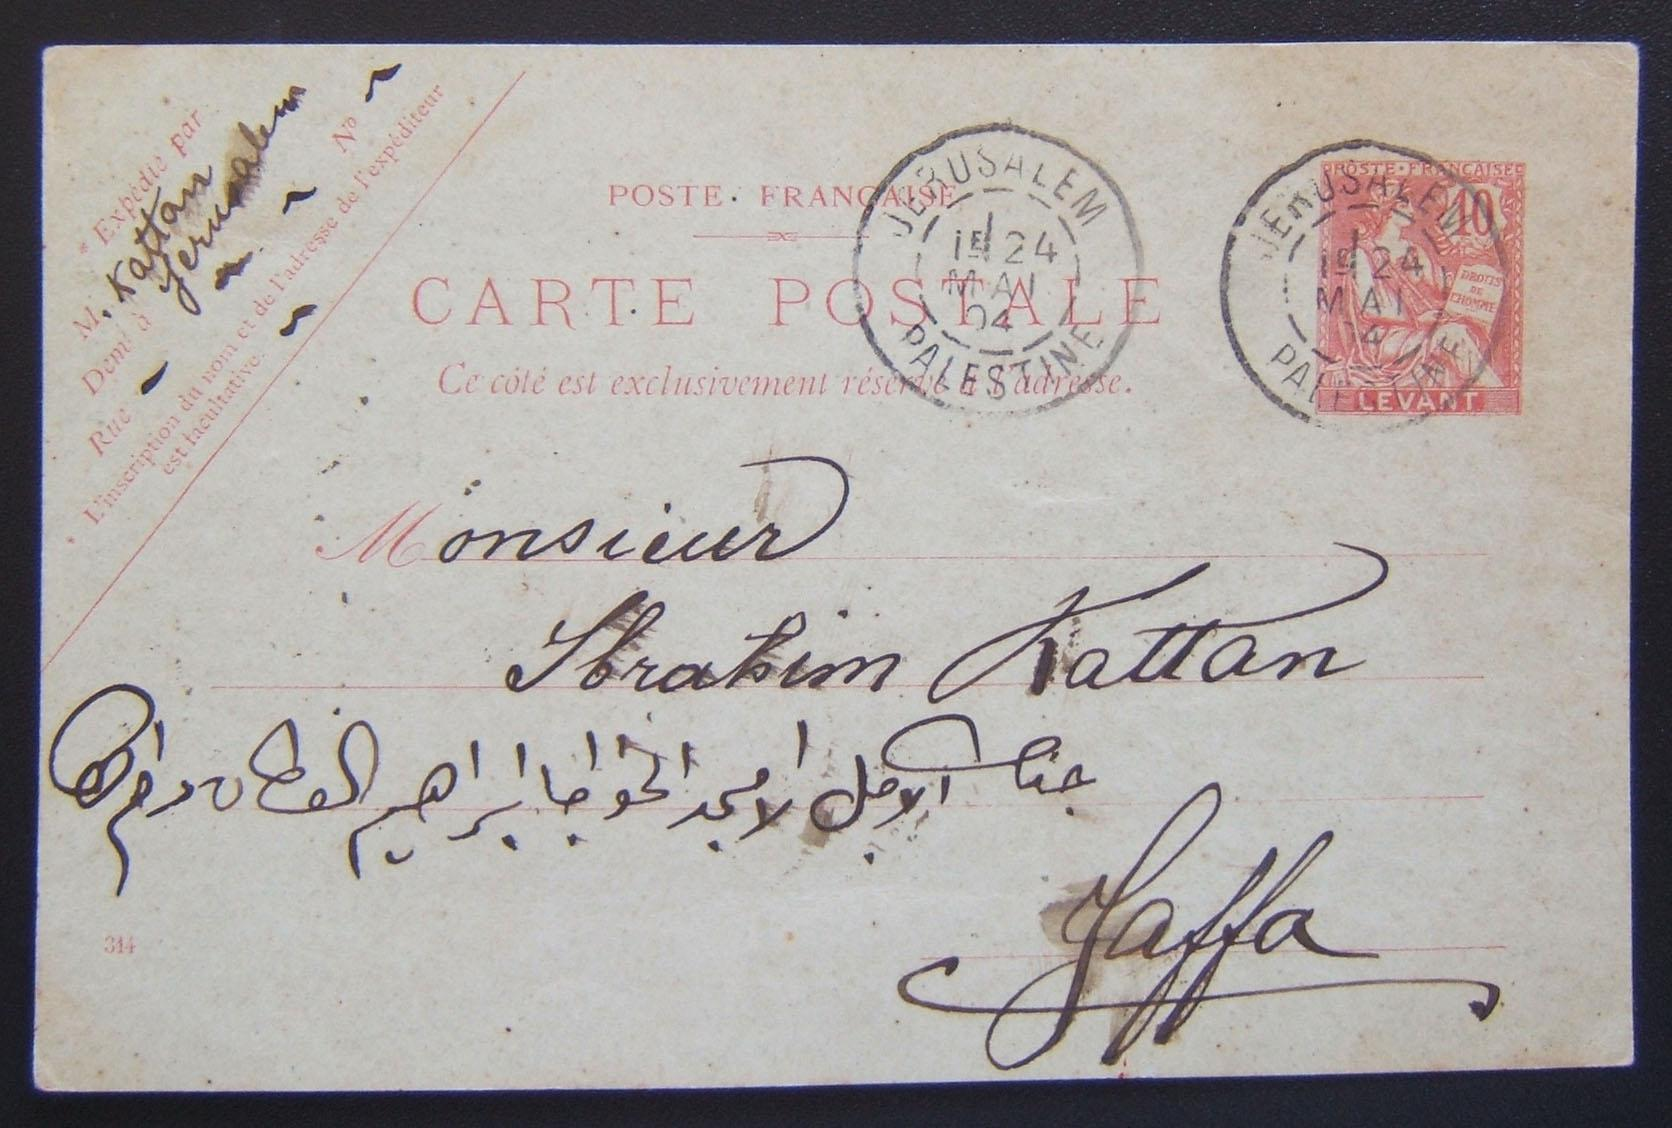 French prepaid postal stationary in Holyland: Levant pale green prepaid postcard (Ba 301) with value of 10 Cent. ex Jerusalem to Jaffa; postmarked 24 MAY 1904 with pmk Ba 314 struc